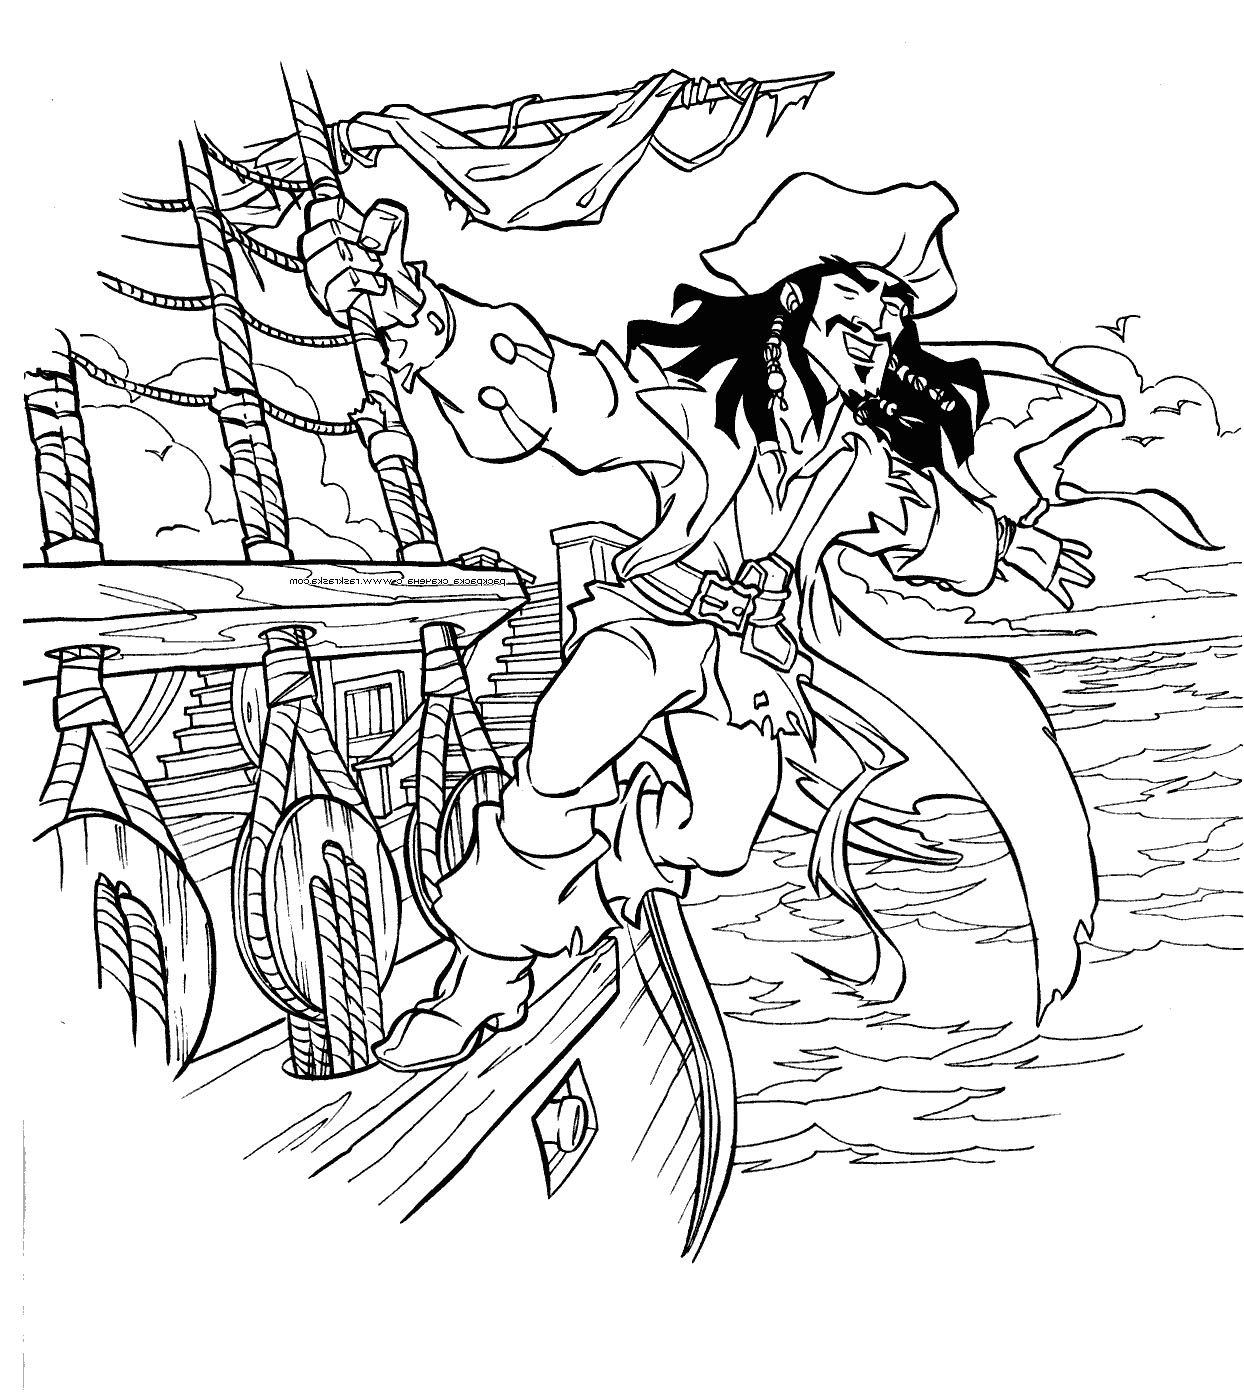 Captain Jack Sparrow On Black Pearl Coloring Pages Pirate Coloring Pages Coloring Pages For Kids Coloring Pages